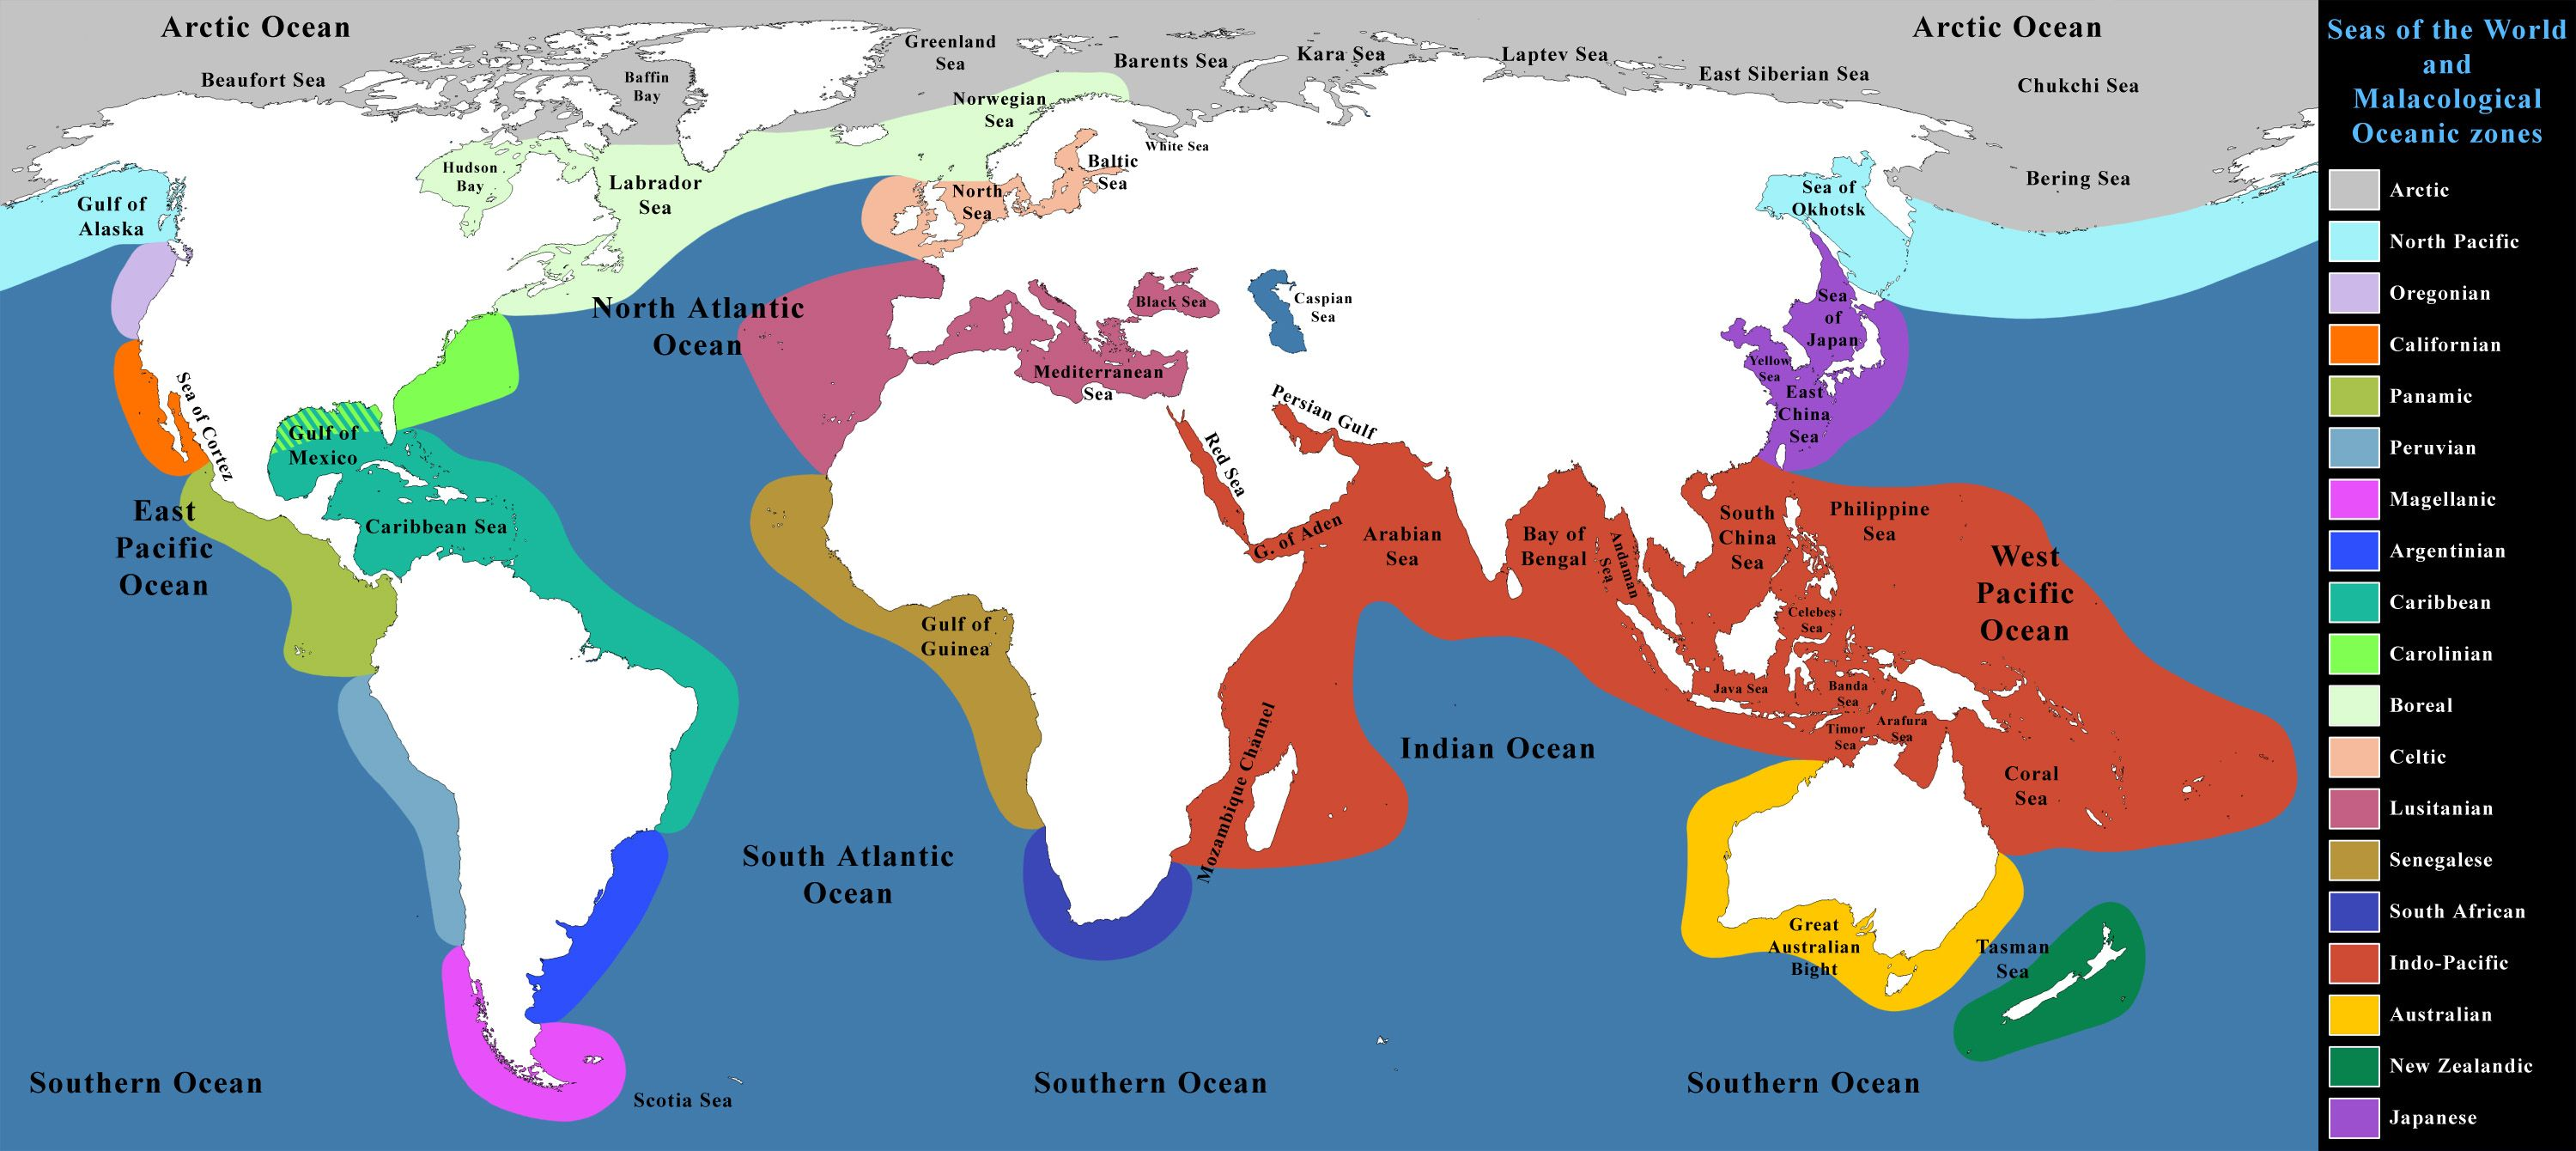 Seas of the world and malacological zones world map oceans seas of the world and malacological zones world map oceans gumiabroncs Gallery